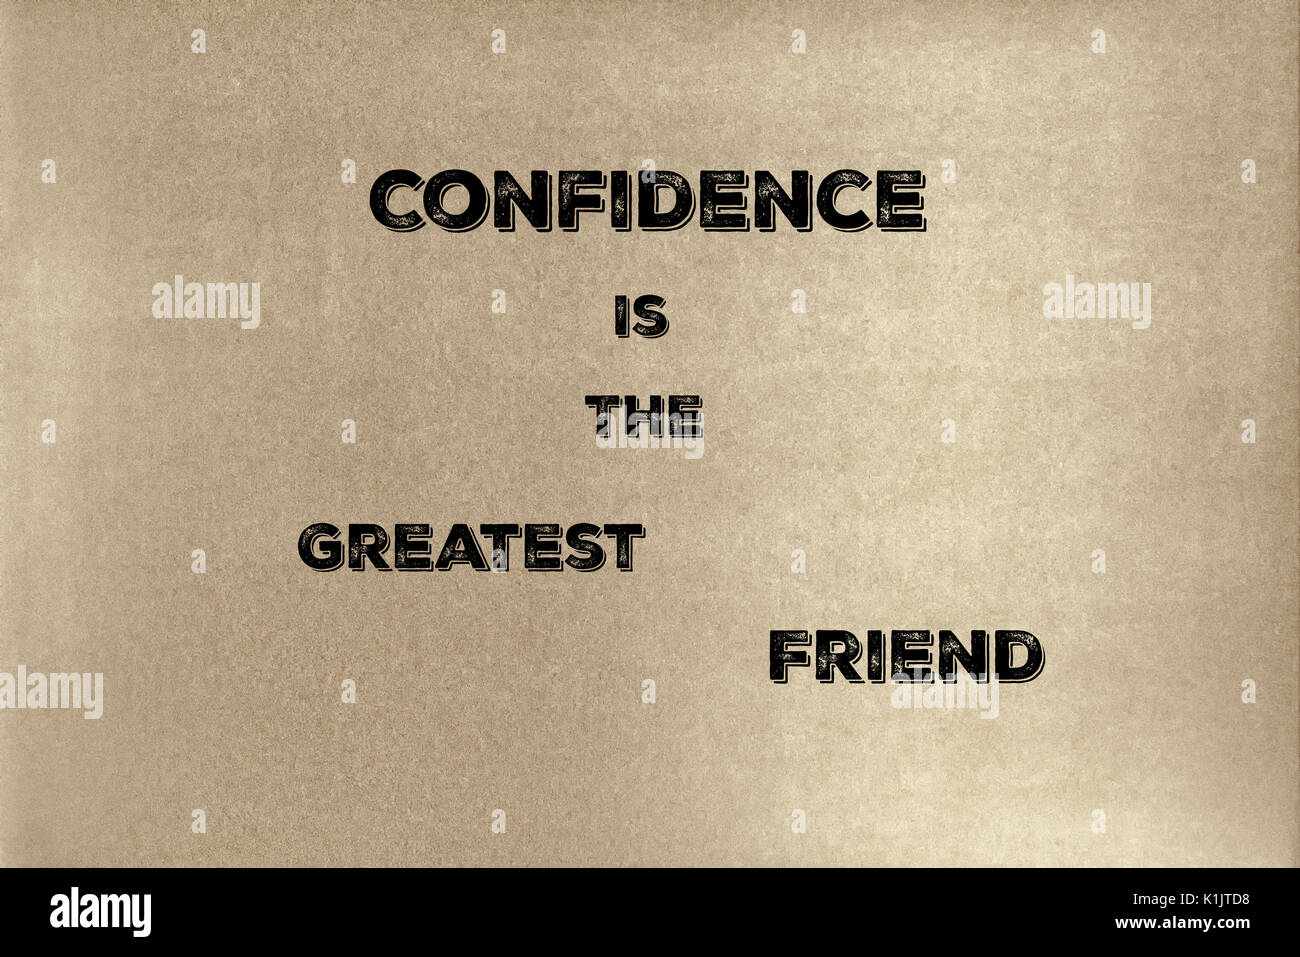 A phrase by Lao Tzu: Confidence is the greatest friend.    Graphic Design. - Stock Image